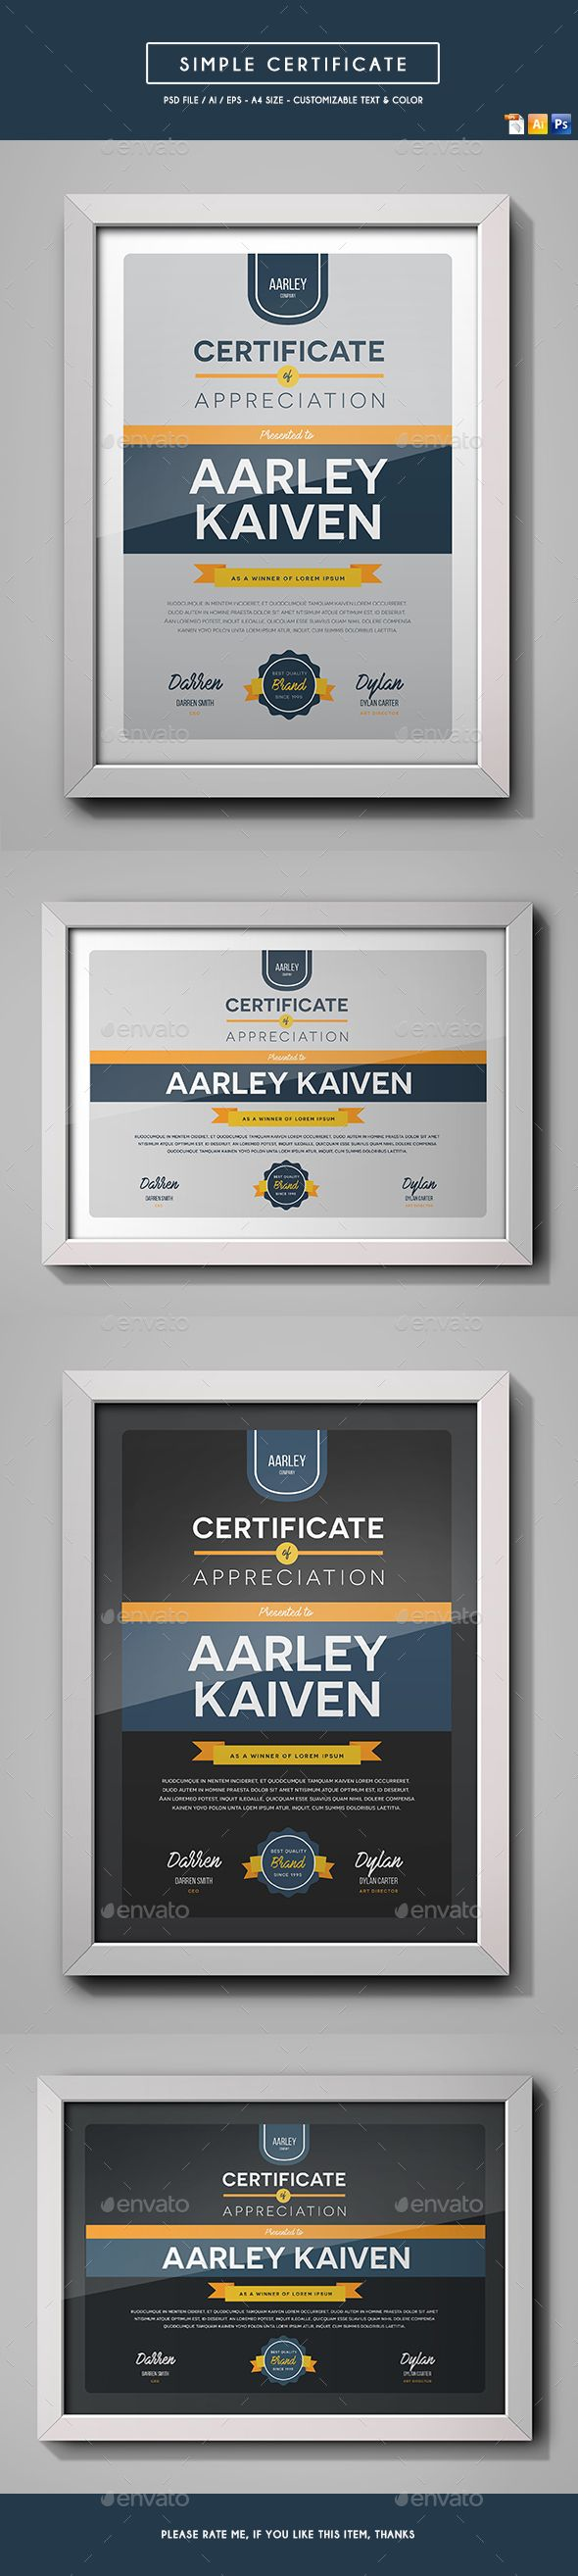 108 best certificate templates images on pinterest infographic simple multipurpose certificate free download xflitez Image collections